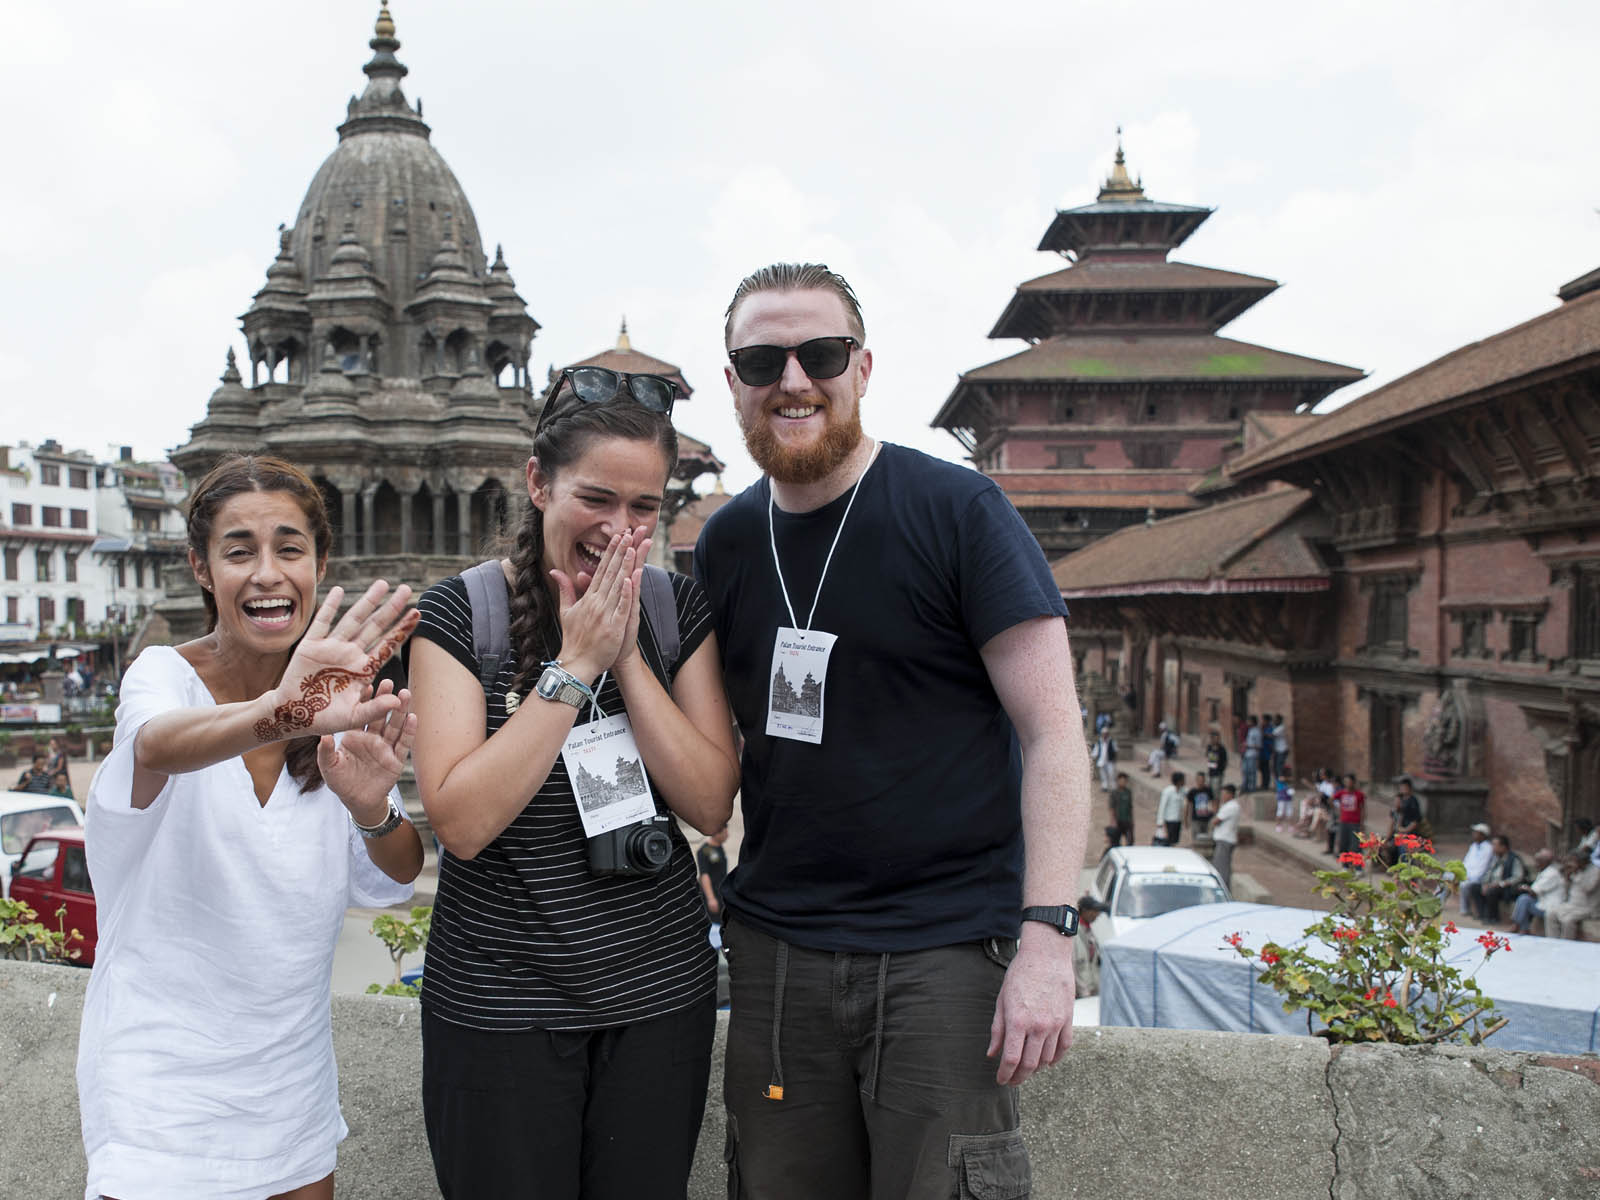 Patan was one of my favourite places in Kathmandu.  This is a photo of some friends and I,  in front of Durbar Square.